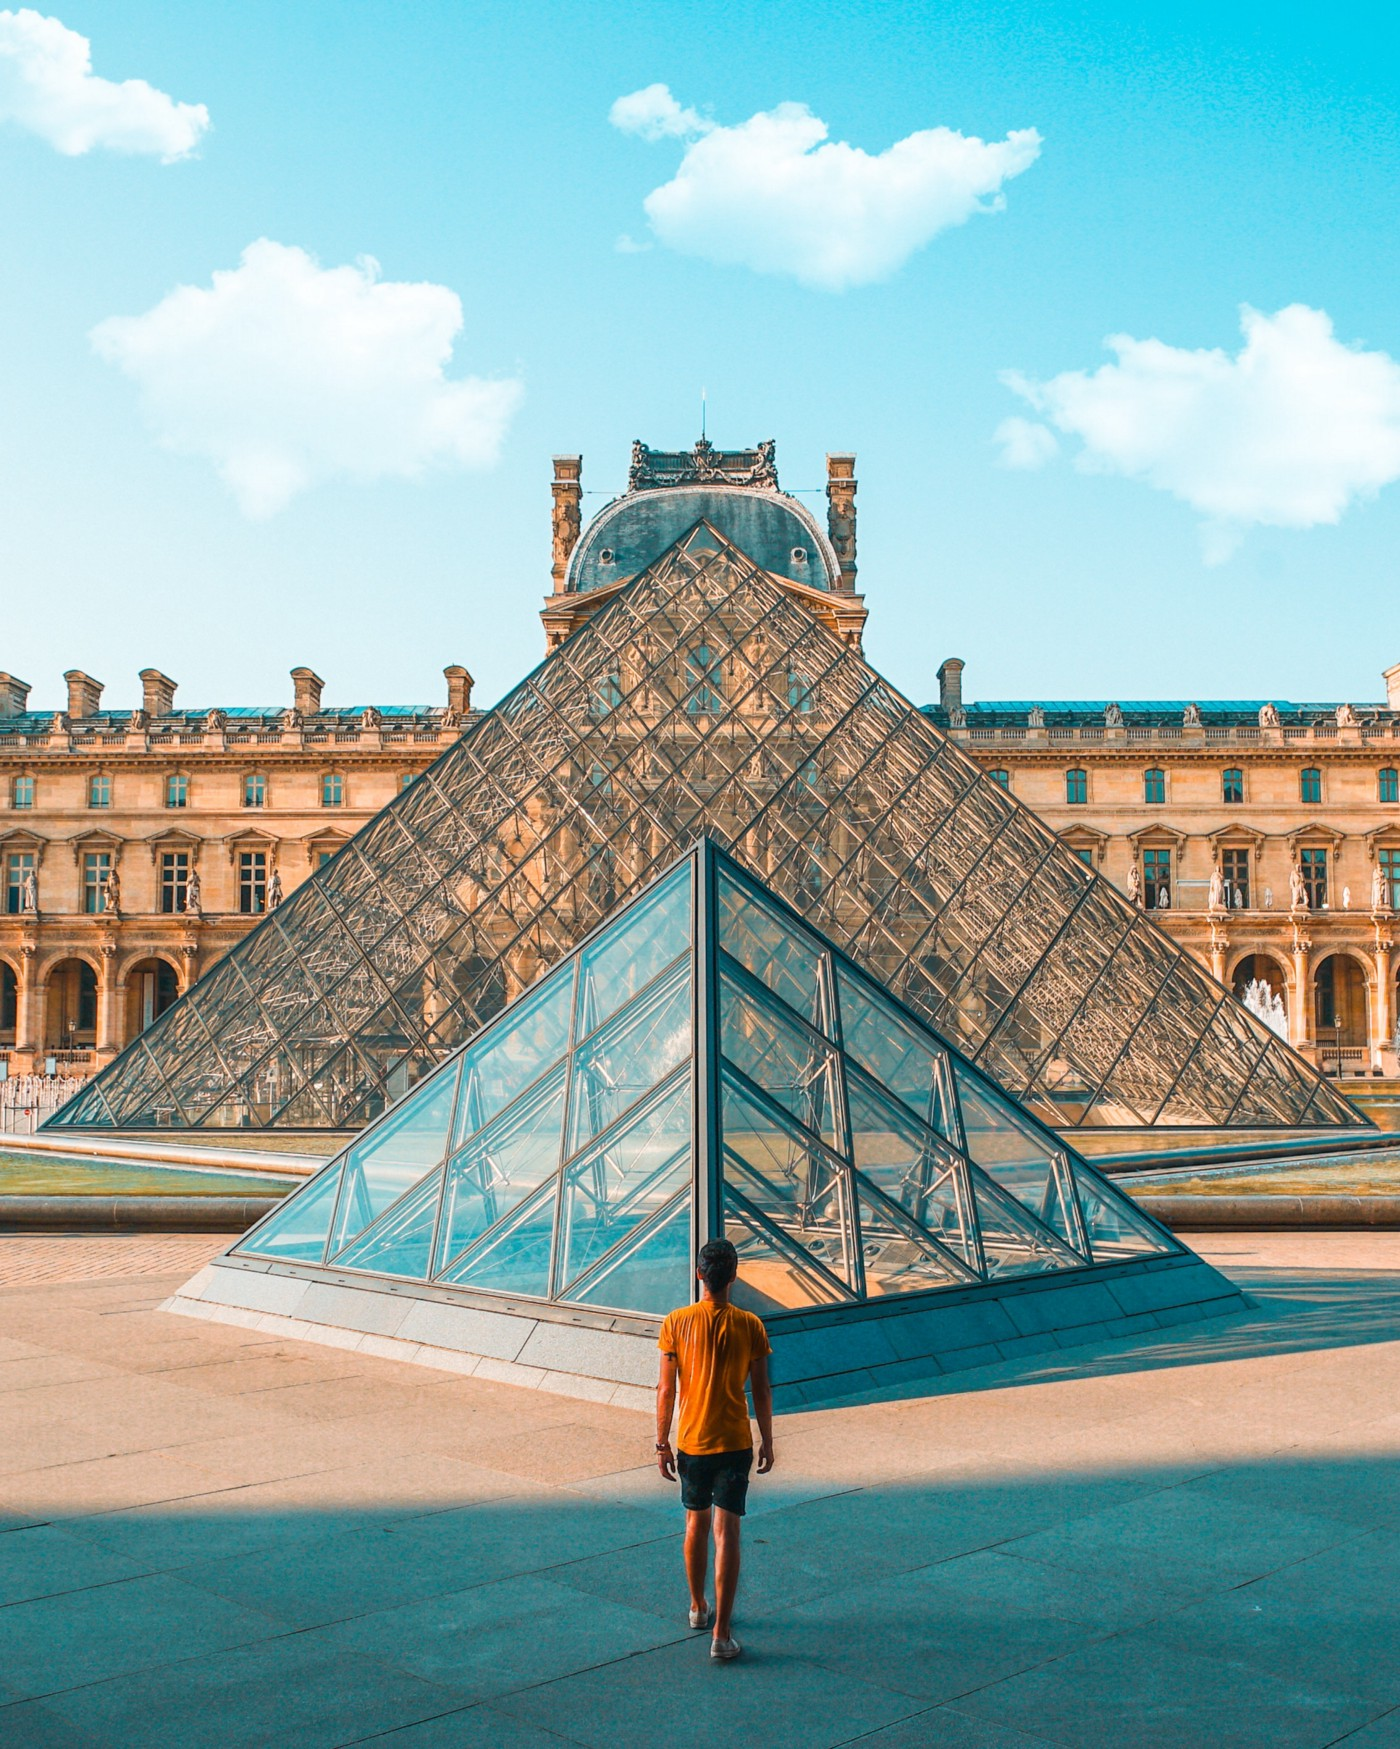 Man standing in front of two glass pyramids. These pyramids form the outside of the Louvre museum in France.